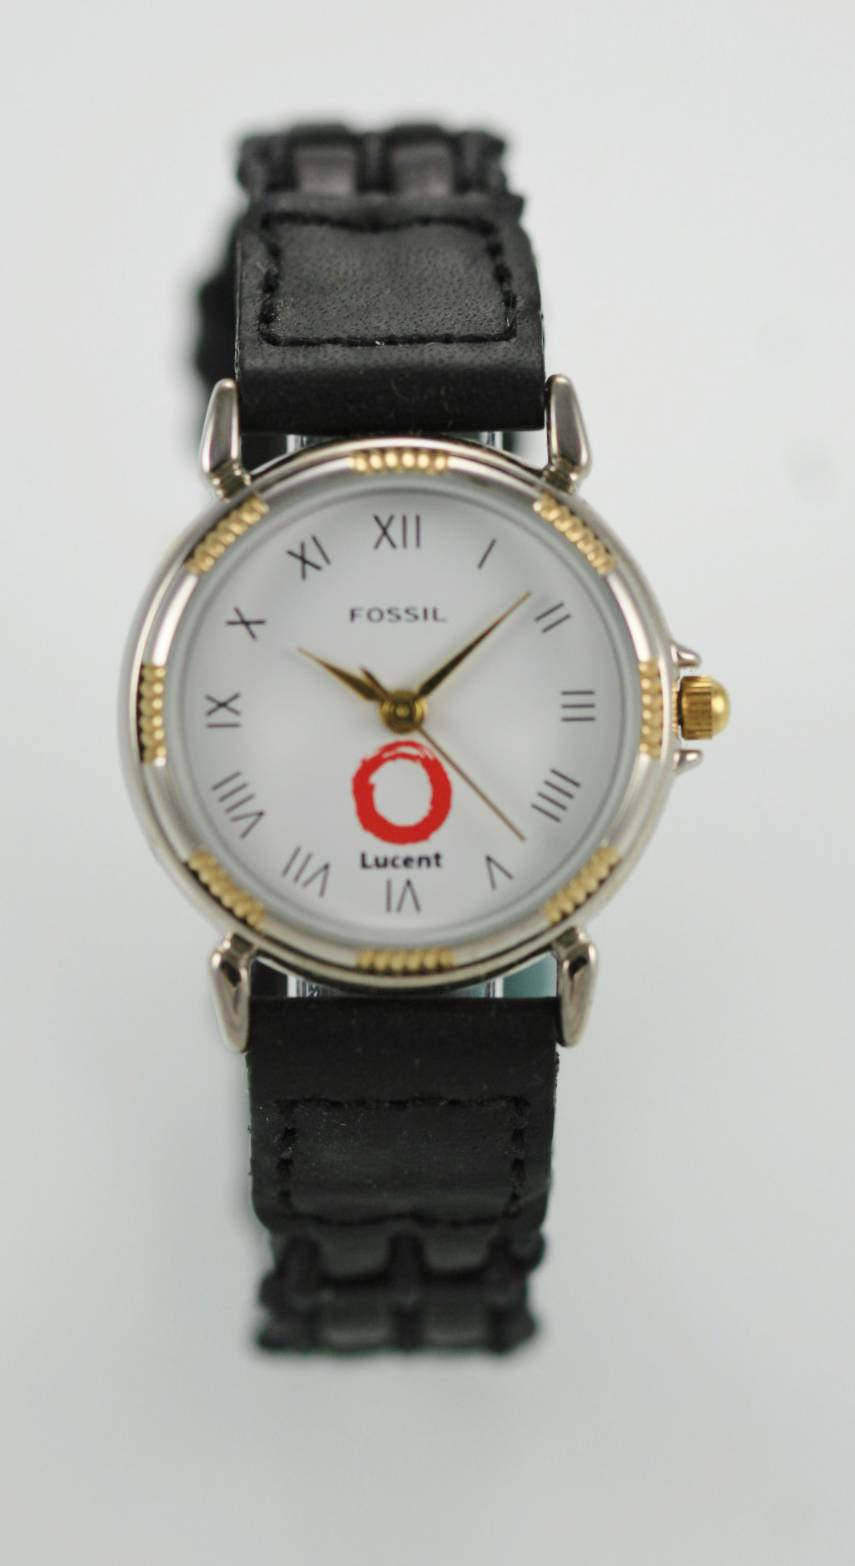 how to change fossil watch battery